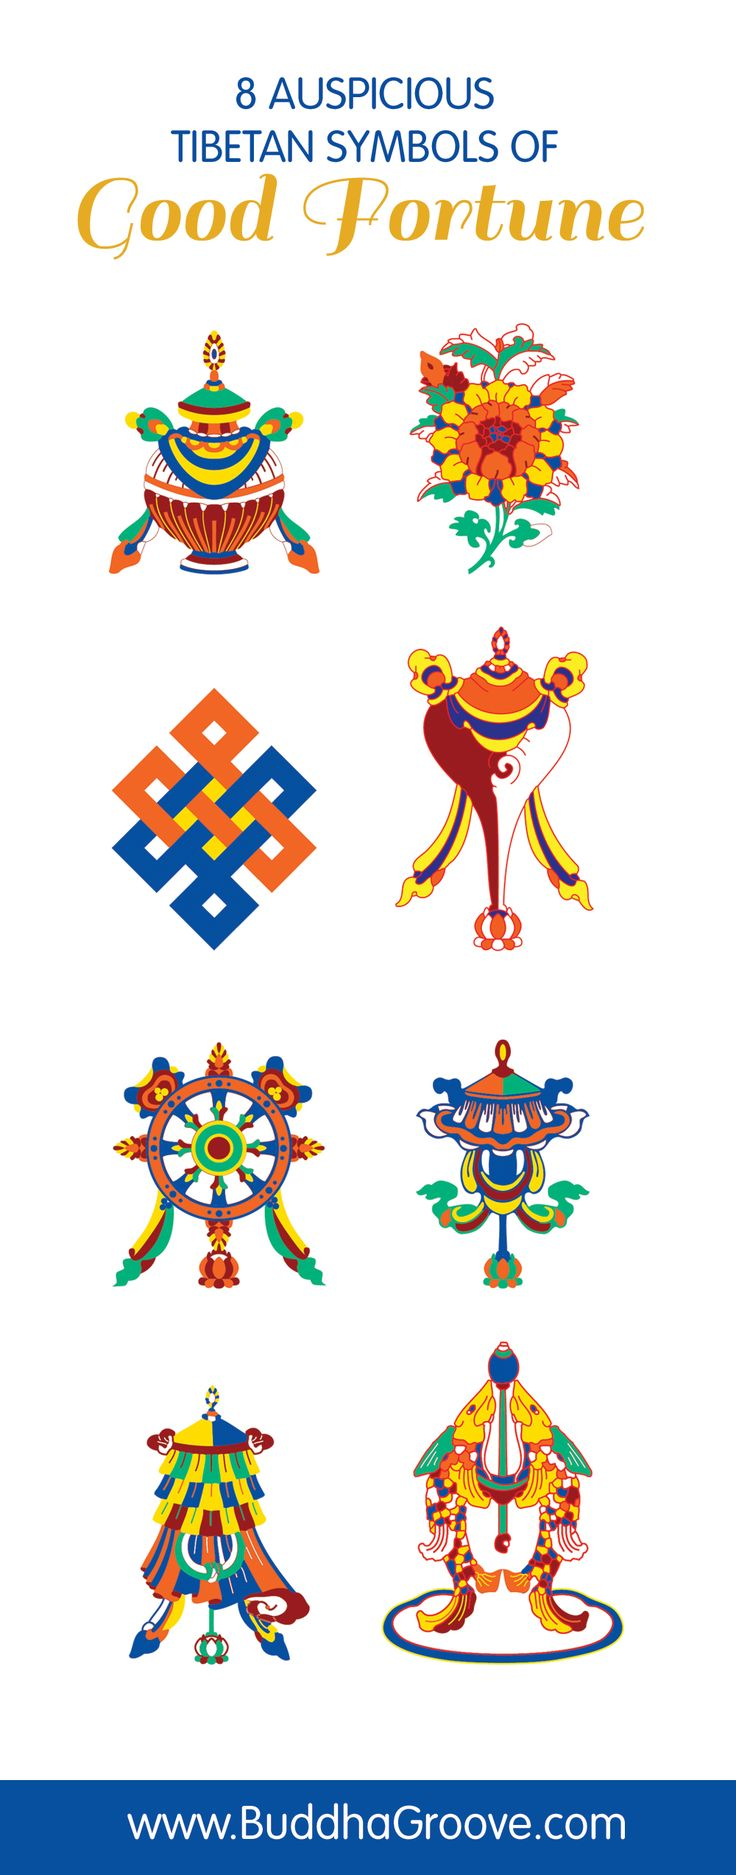 Signs of good fortune have been established in Hindu mythology since ancient times. Tibetan Buddhism has a group of eight symbols that are considered to be the oldest and most well known. These eight symbols include the Golden Fish, the Parasol, the Run, the Lotus Flower, the Conch Shell, the Infinite Knot, the Wheel, and the Flag.